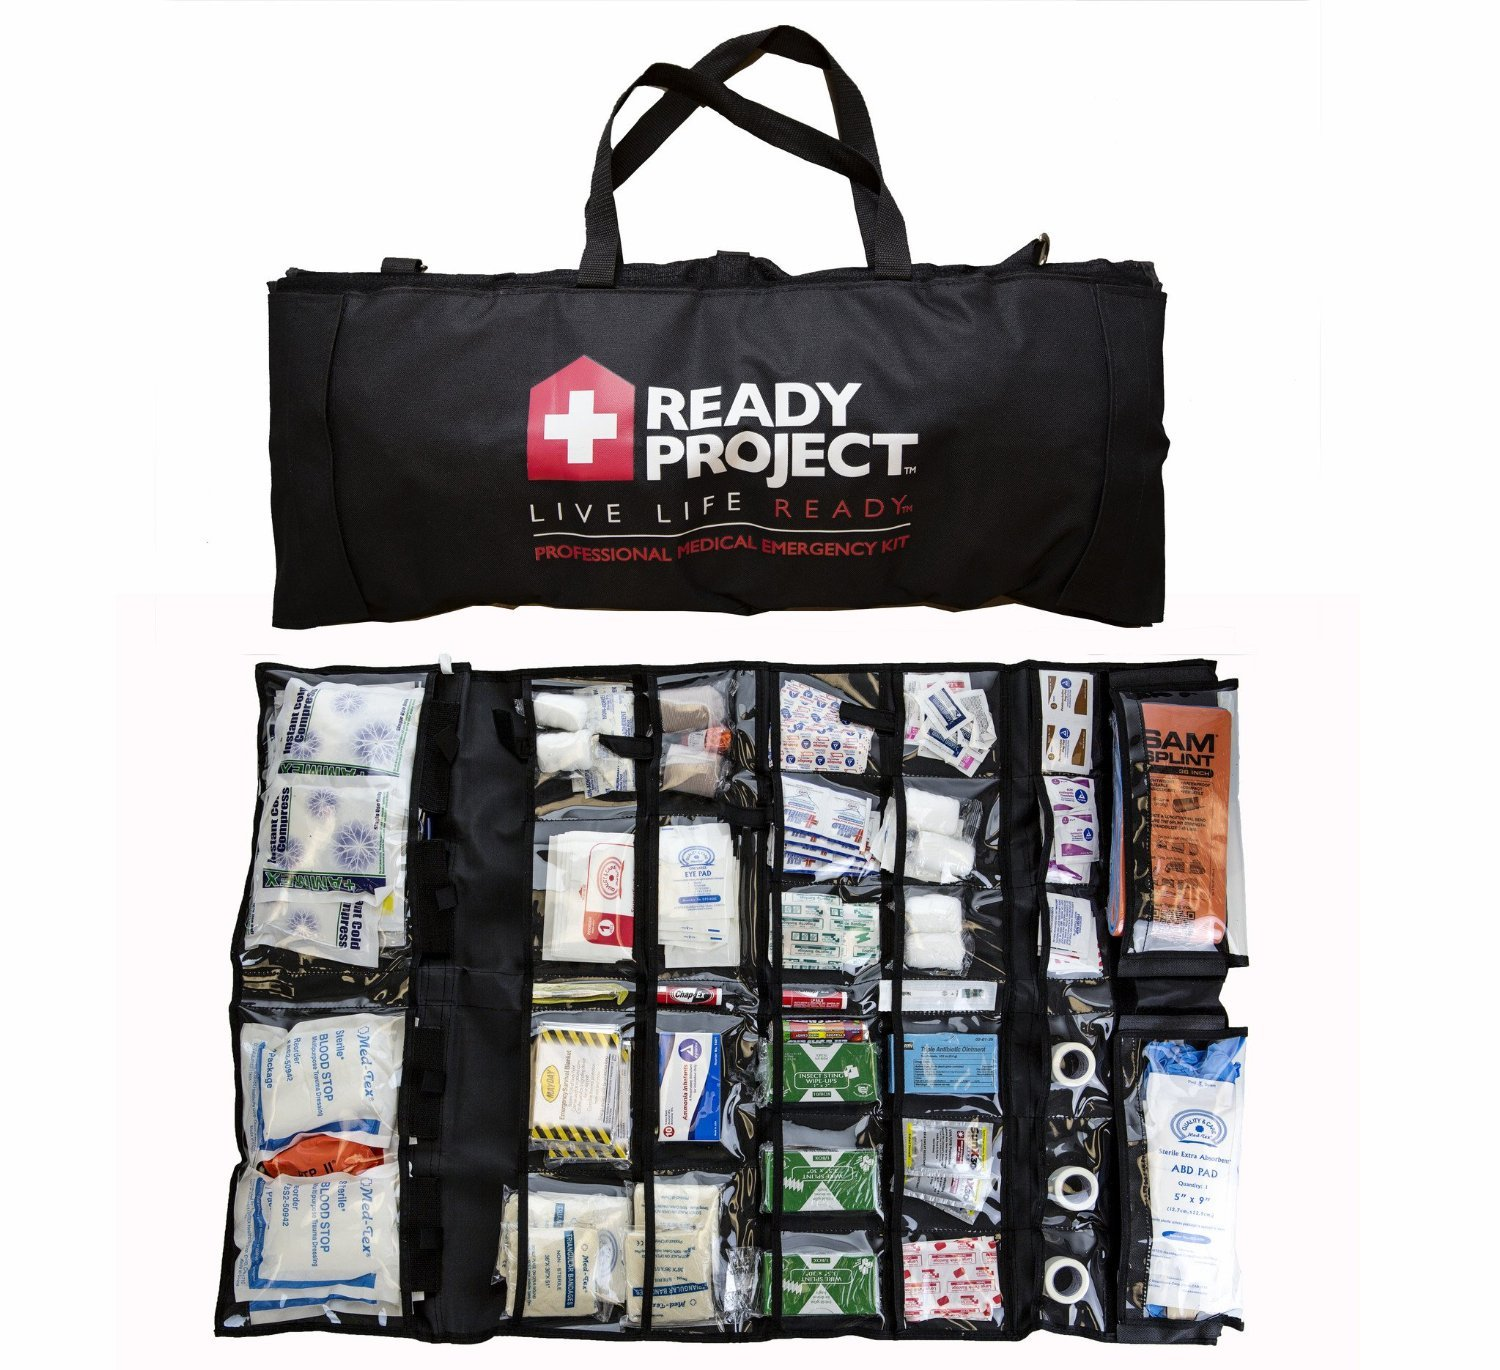 Professional Medical Emergency Kit – All-In-One Life Saving Portable Survival Kit - Emergency Preparedness Essential Package for life